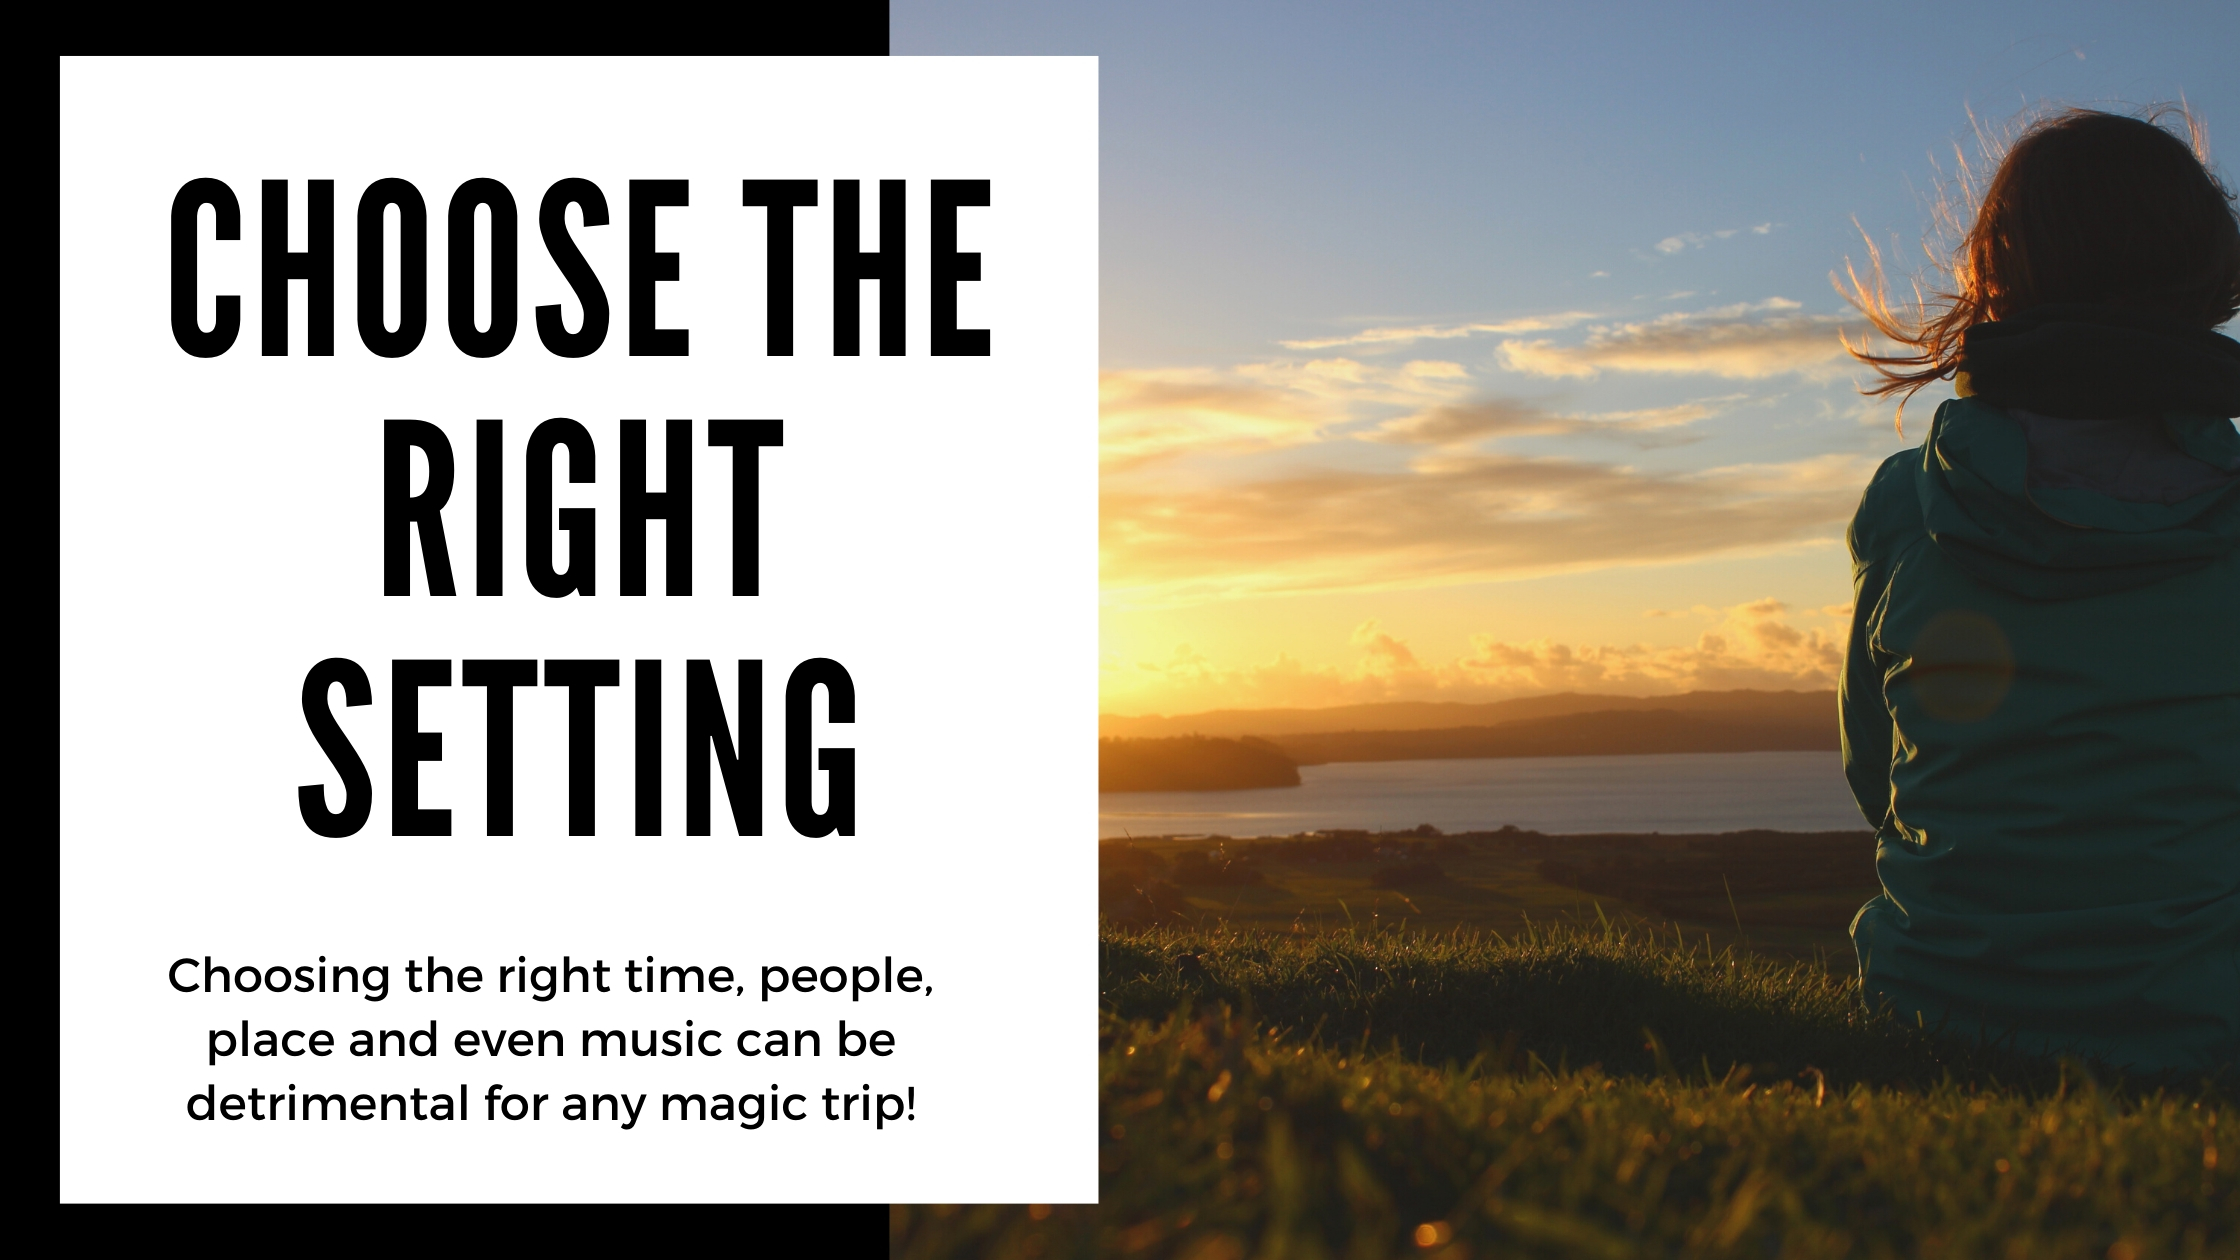 setting is important for every psychedelic experience